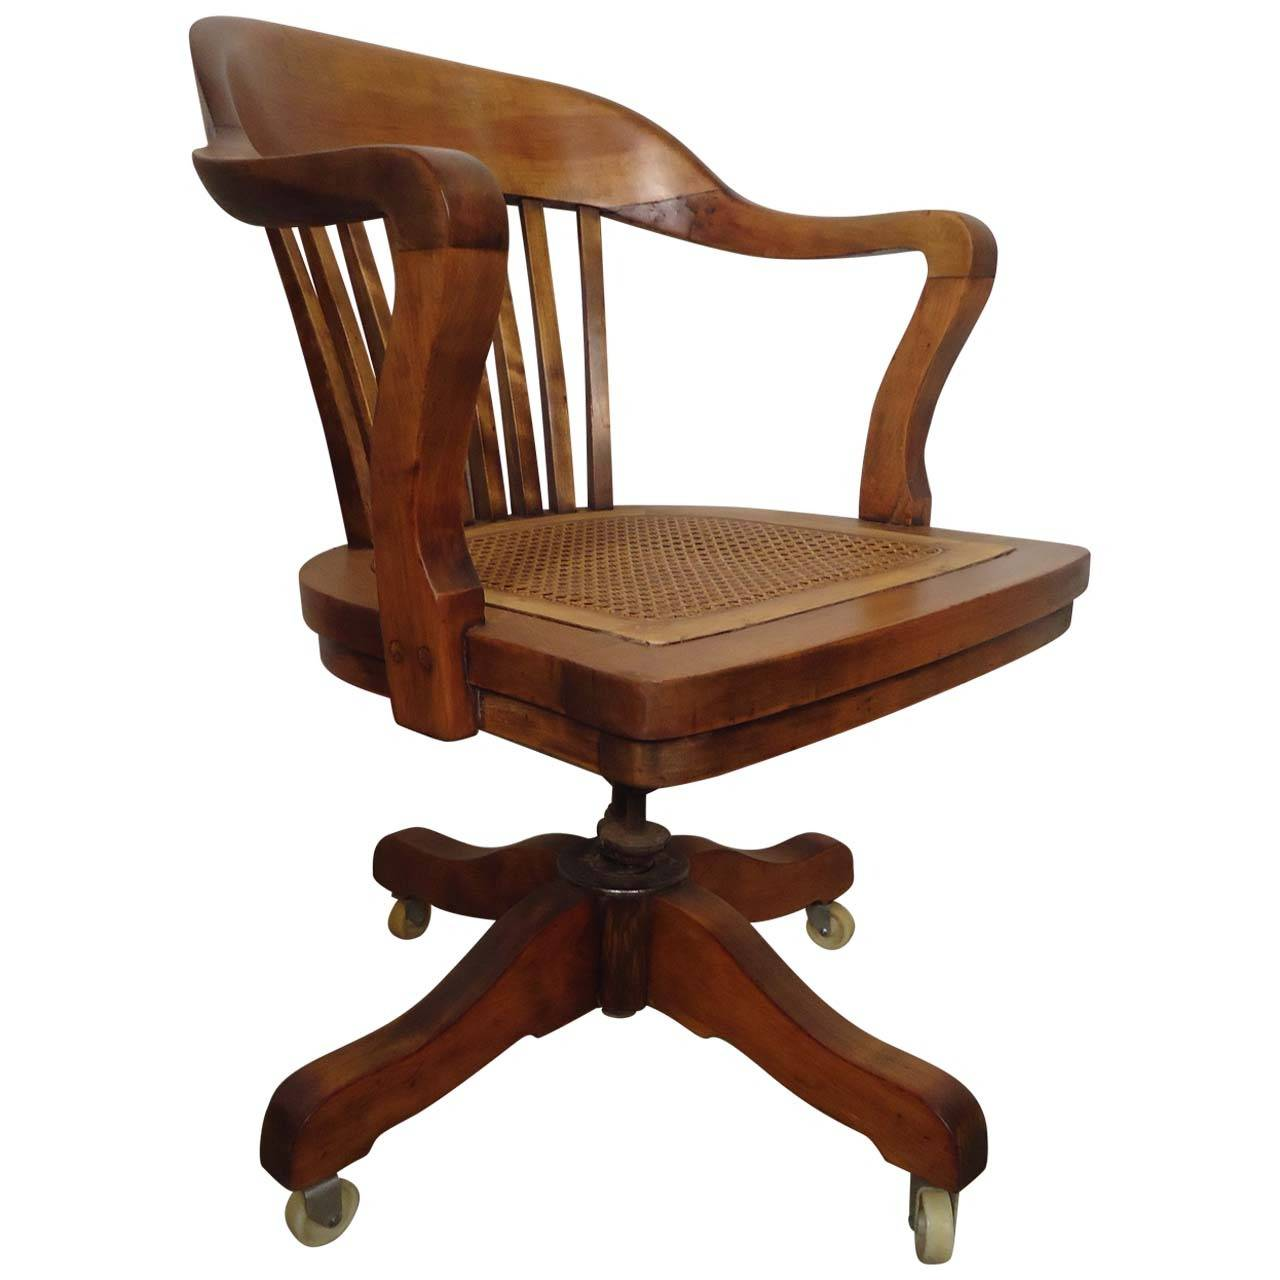 Restored Vintage Swivel Desk Chair By PAGE For Sale - Restored Vintage Swivel Desk Chair By PAGE At 1stdibs